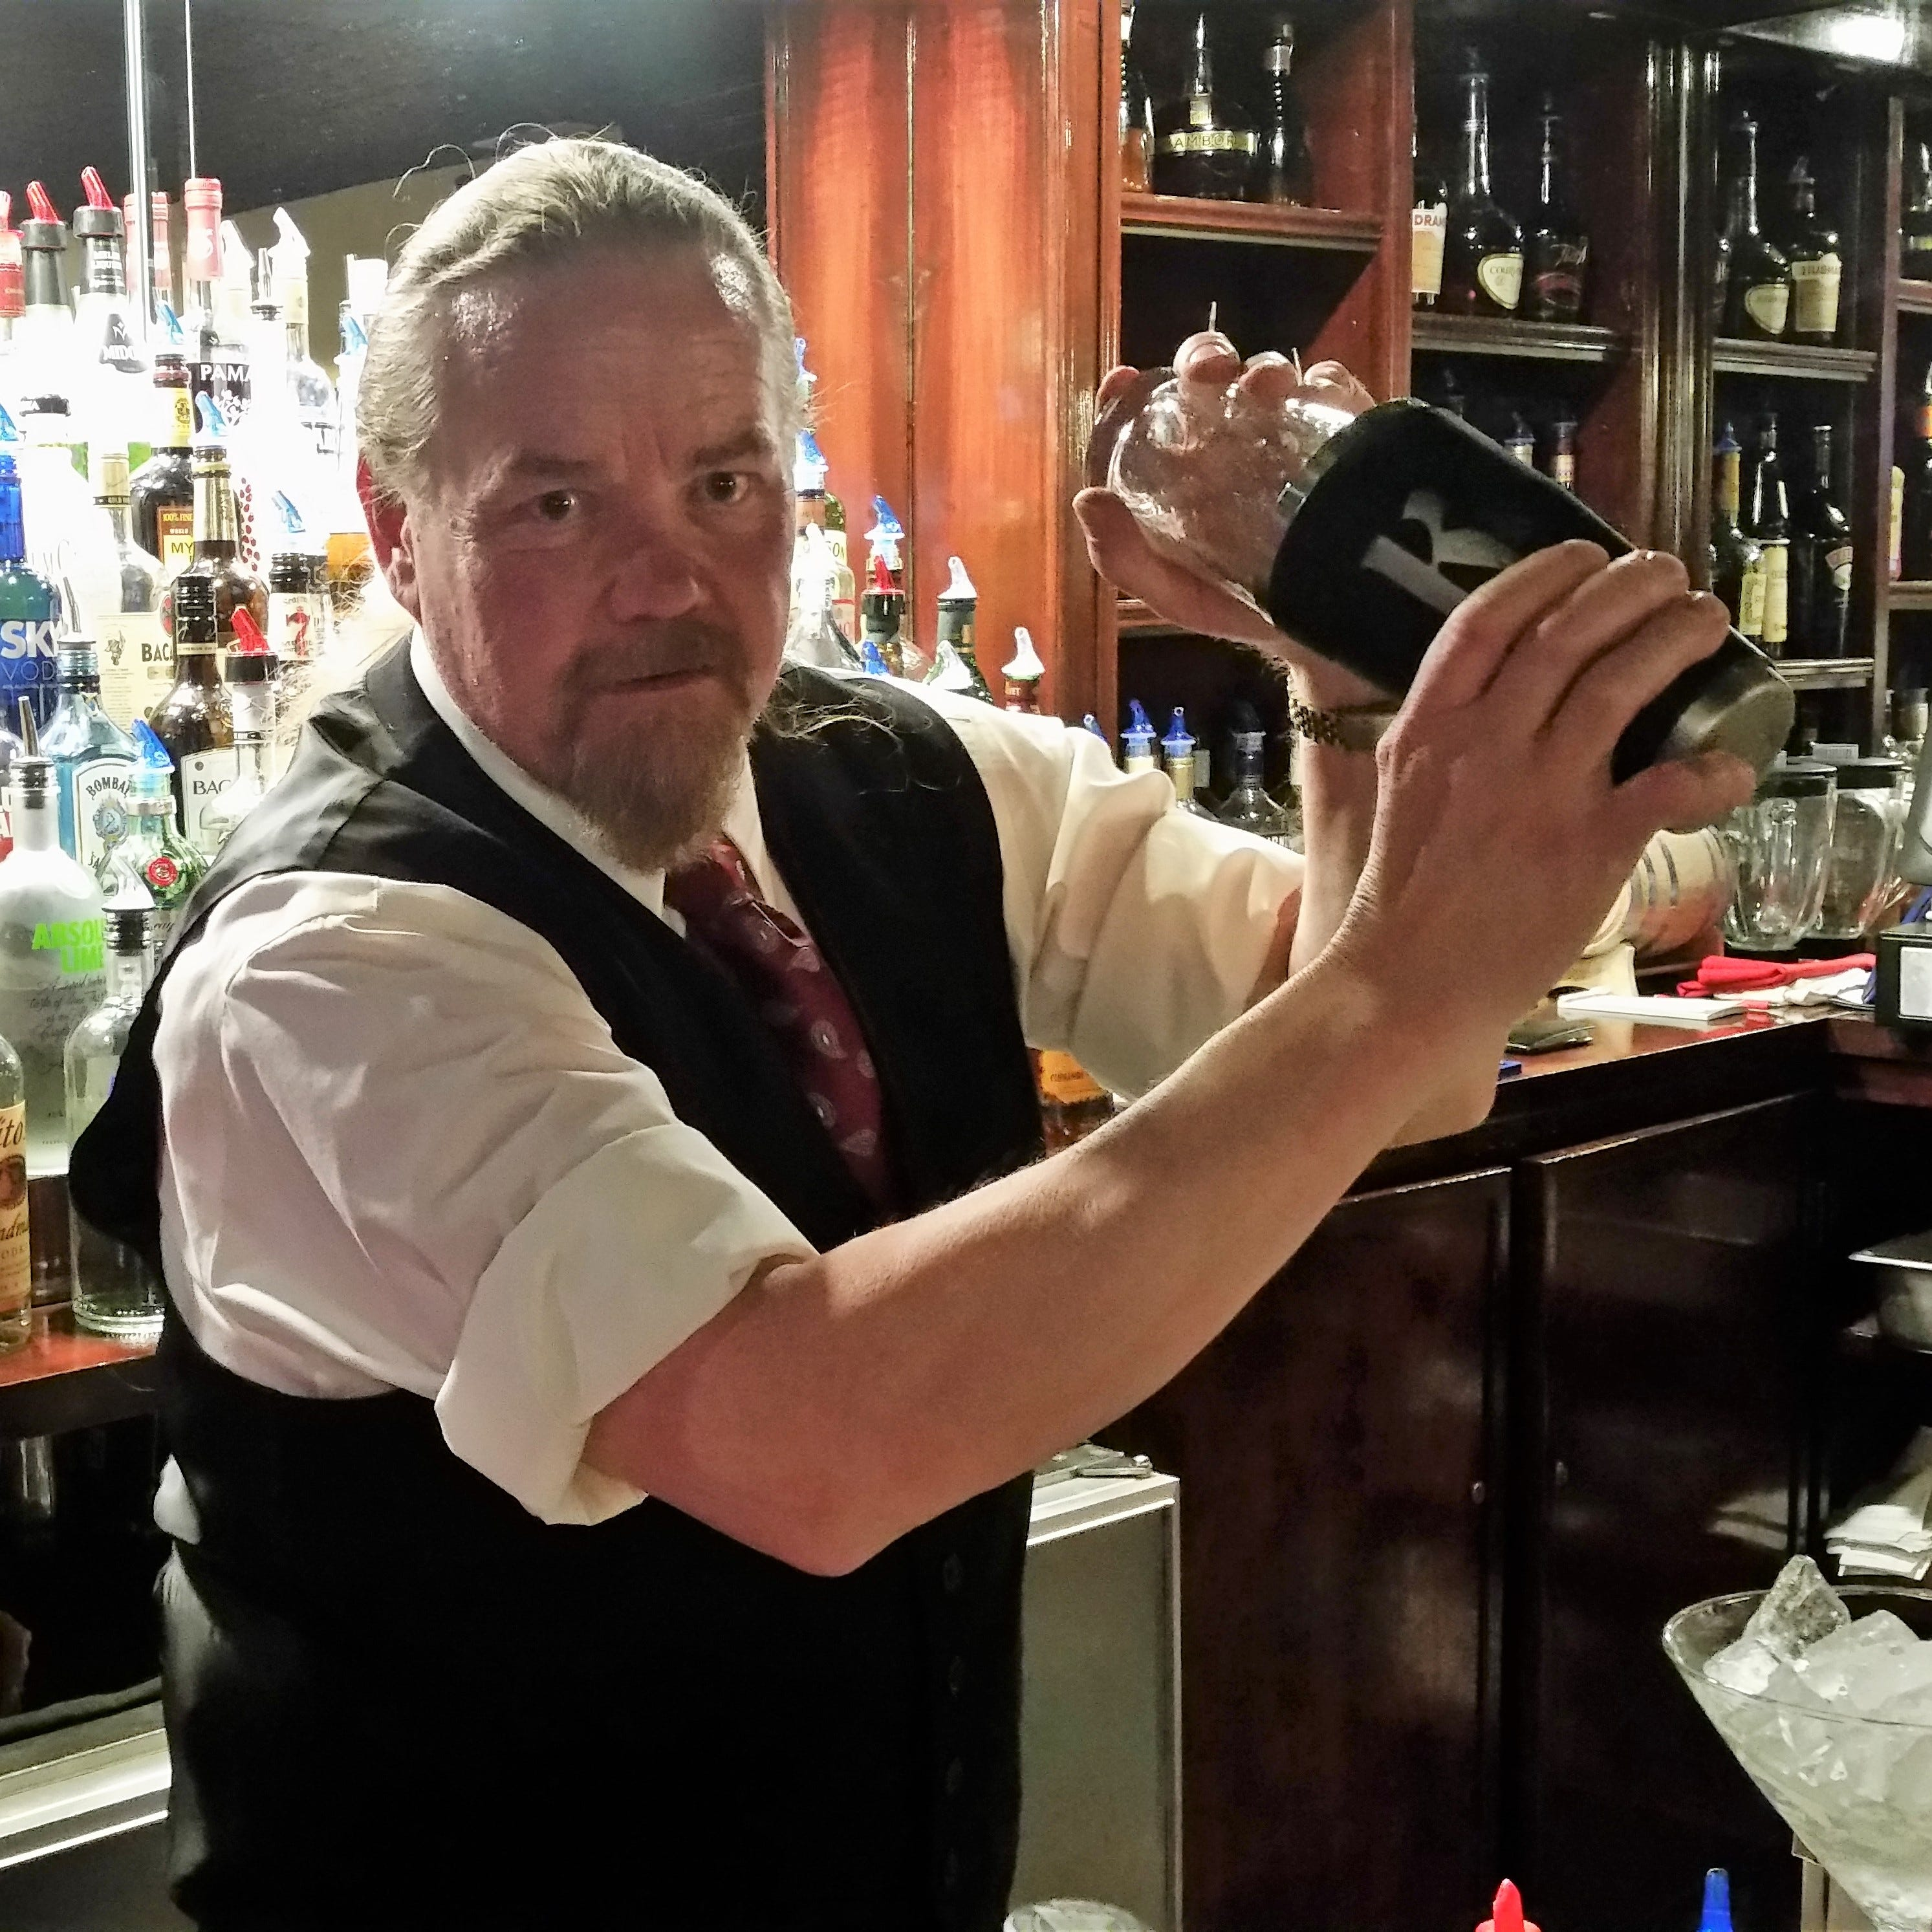 Keithley's Korner: Ed Krause is the man behind the bar at Ranchers